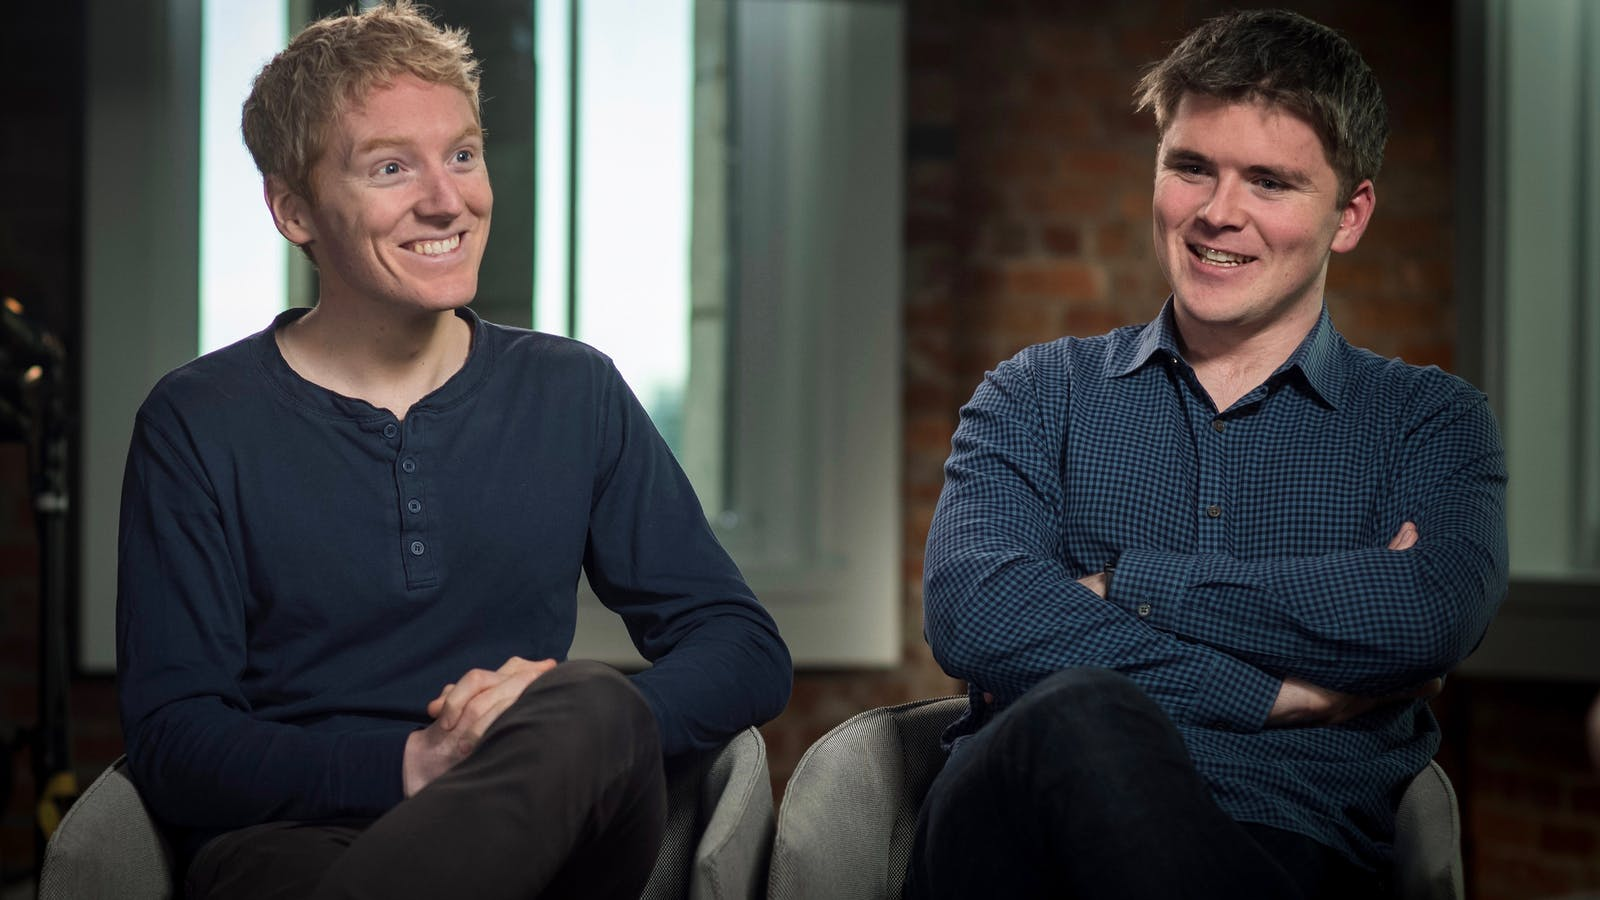 Stripe co-founders Patrick Collison and John Collison. Photo by Bloomberg.